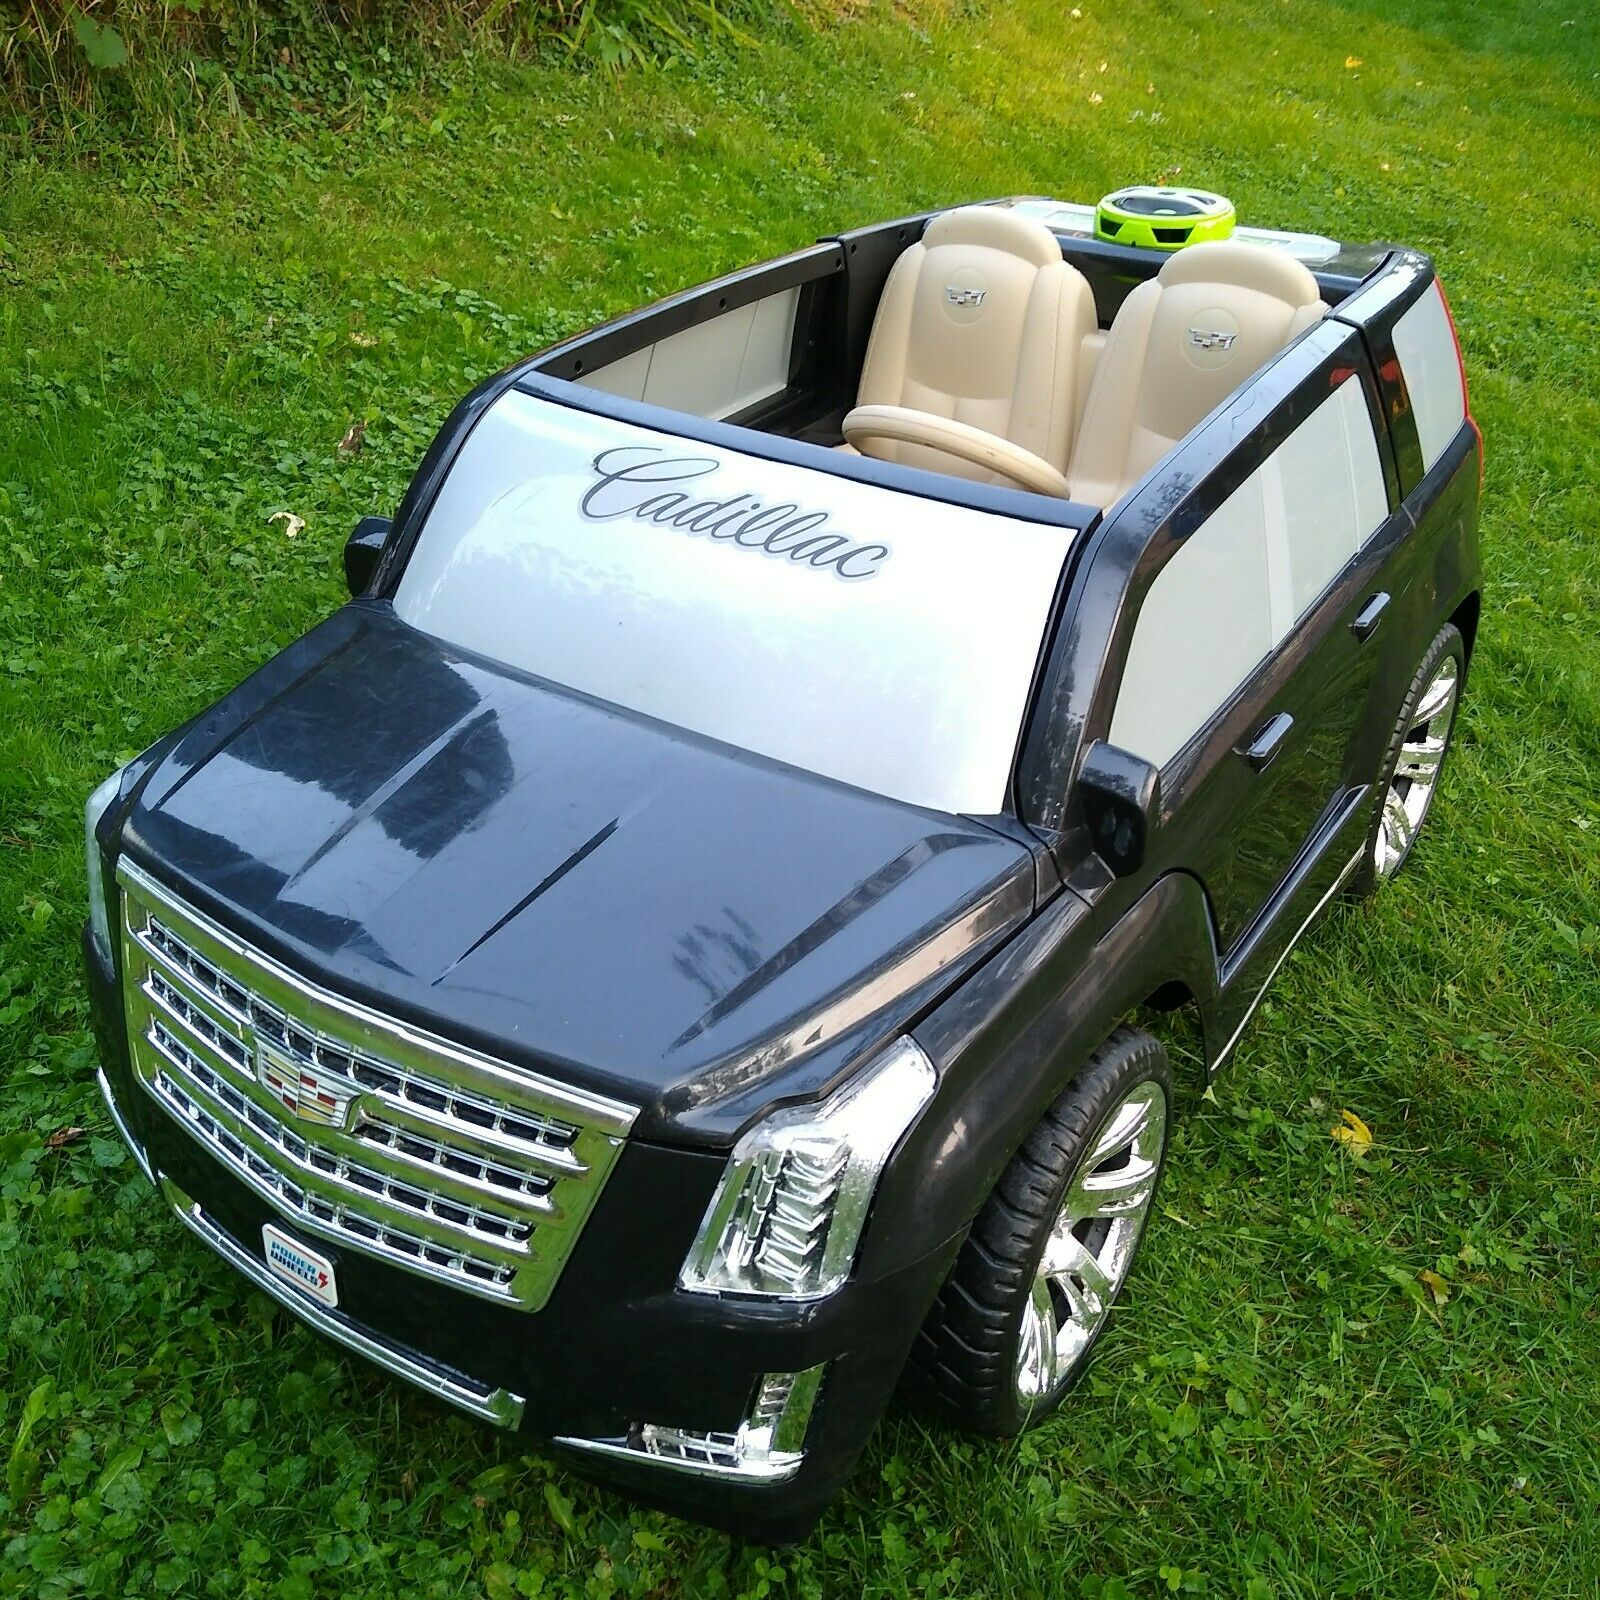 power wheels barbie cadillac escalade ride on model 20765593 for sale online ebay power wheels black cadillac escalade huge 12v car suv electric ride on toy